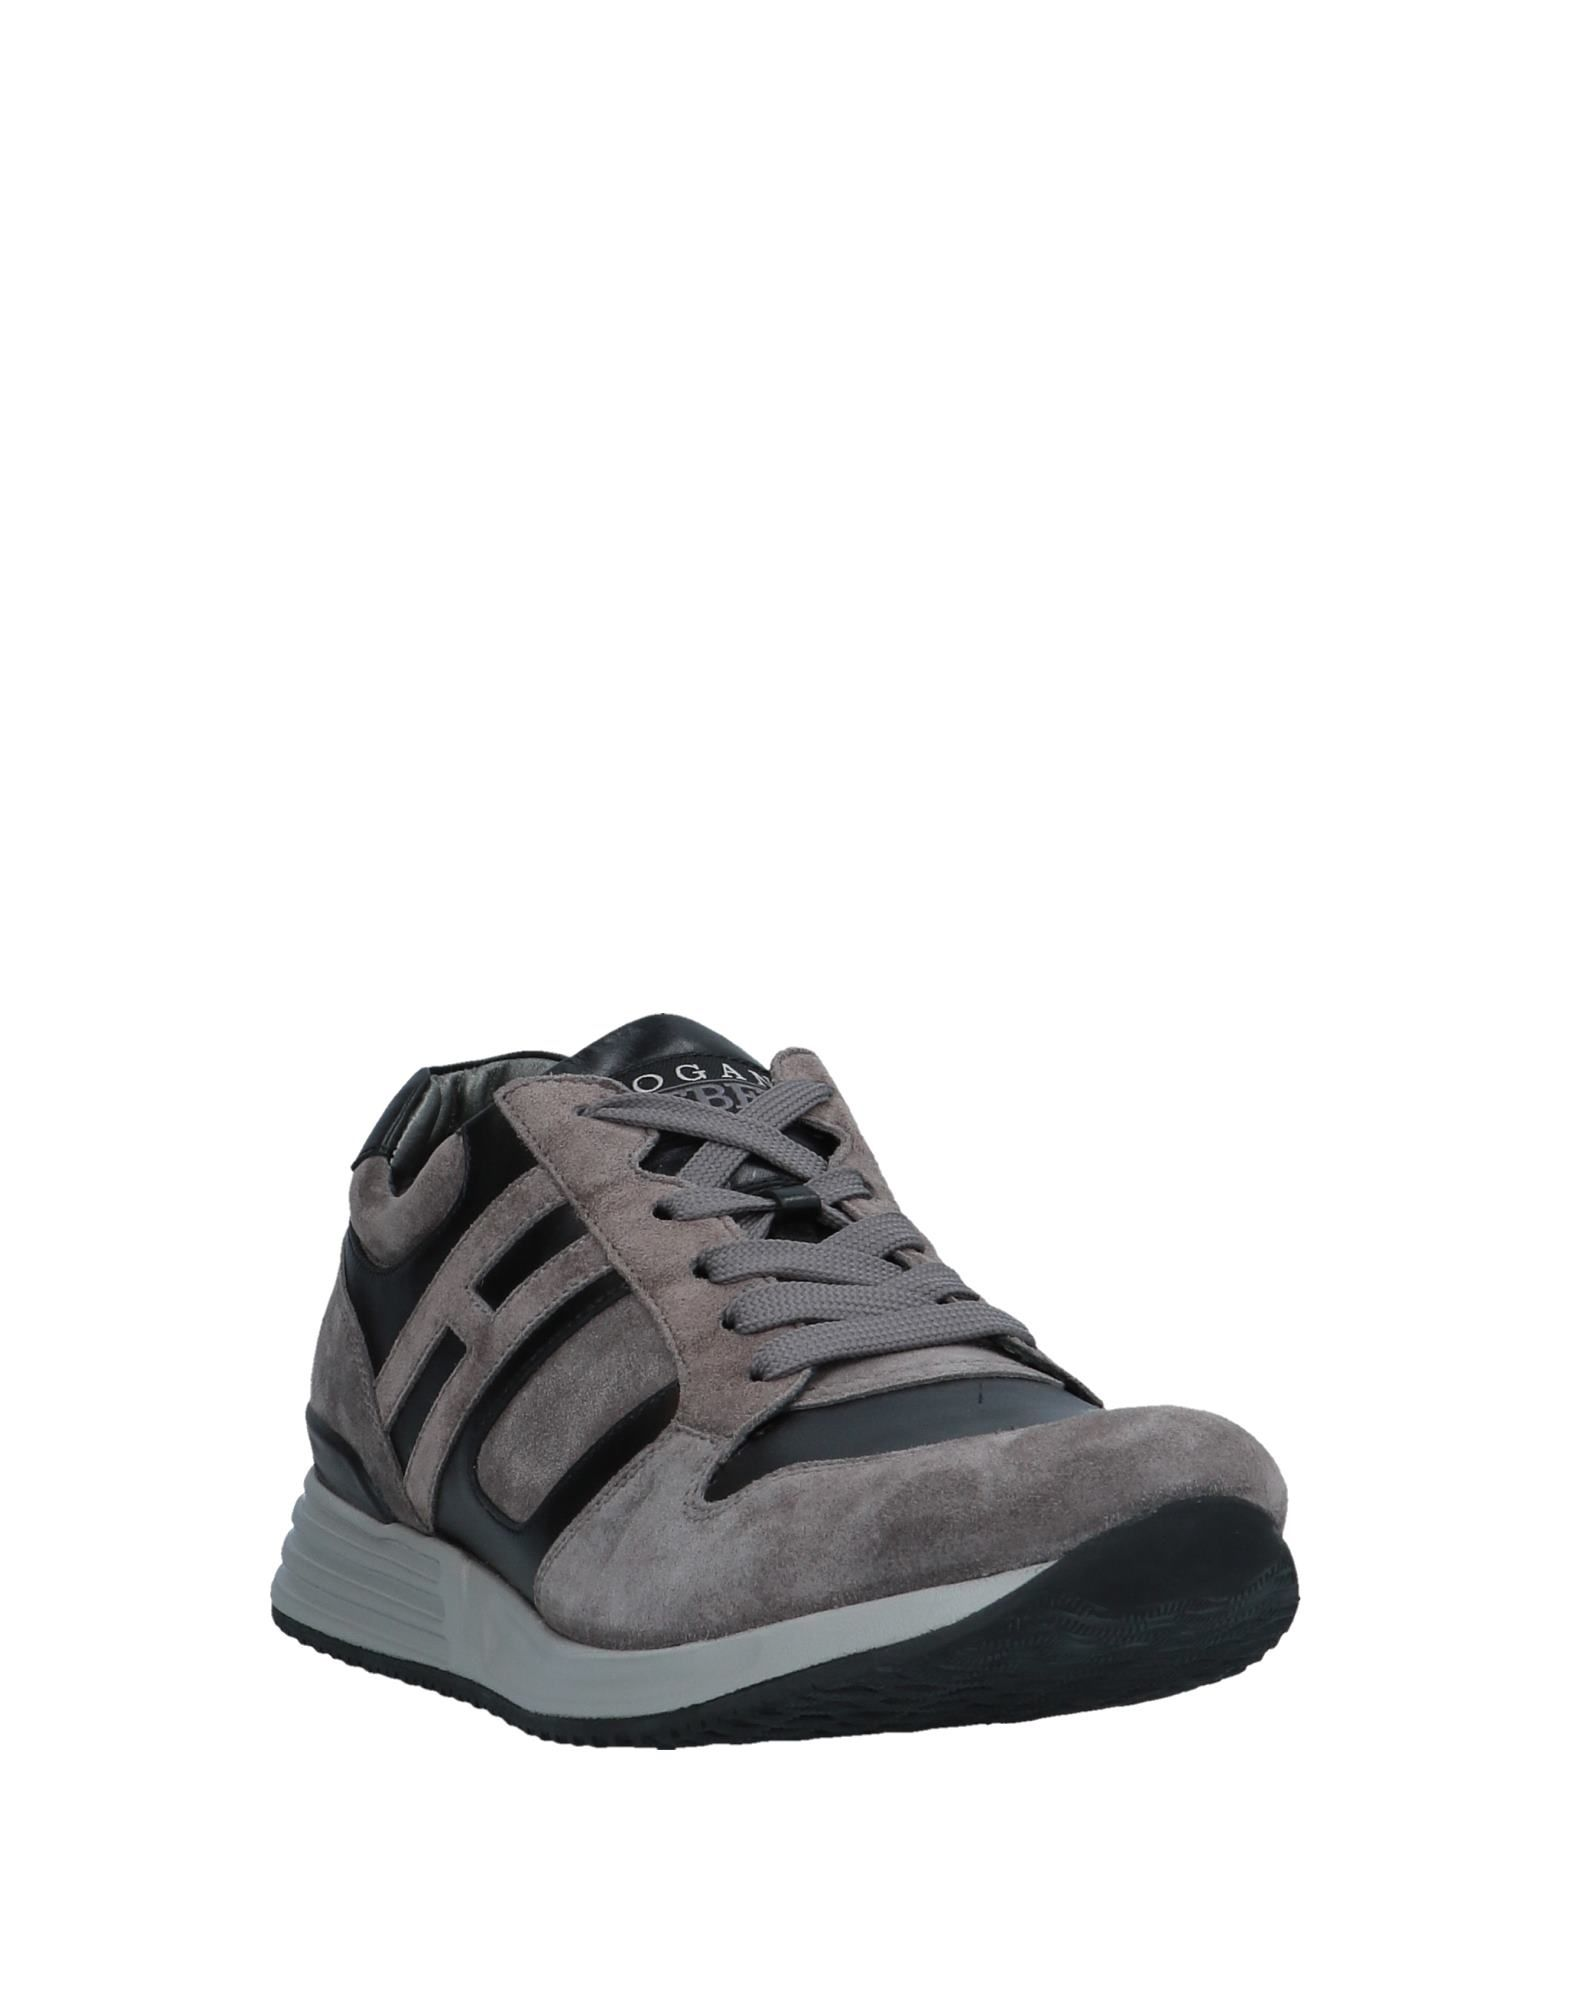 Hogan  Rebel Sneakers Herren  Hogan 11544404UC fbea7a